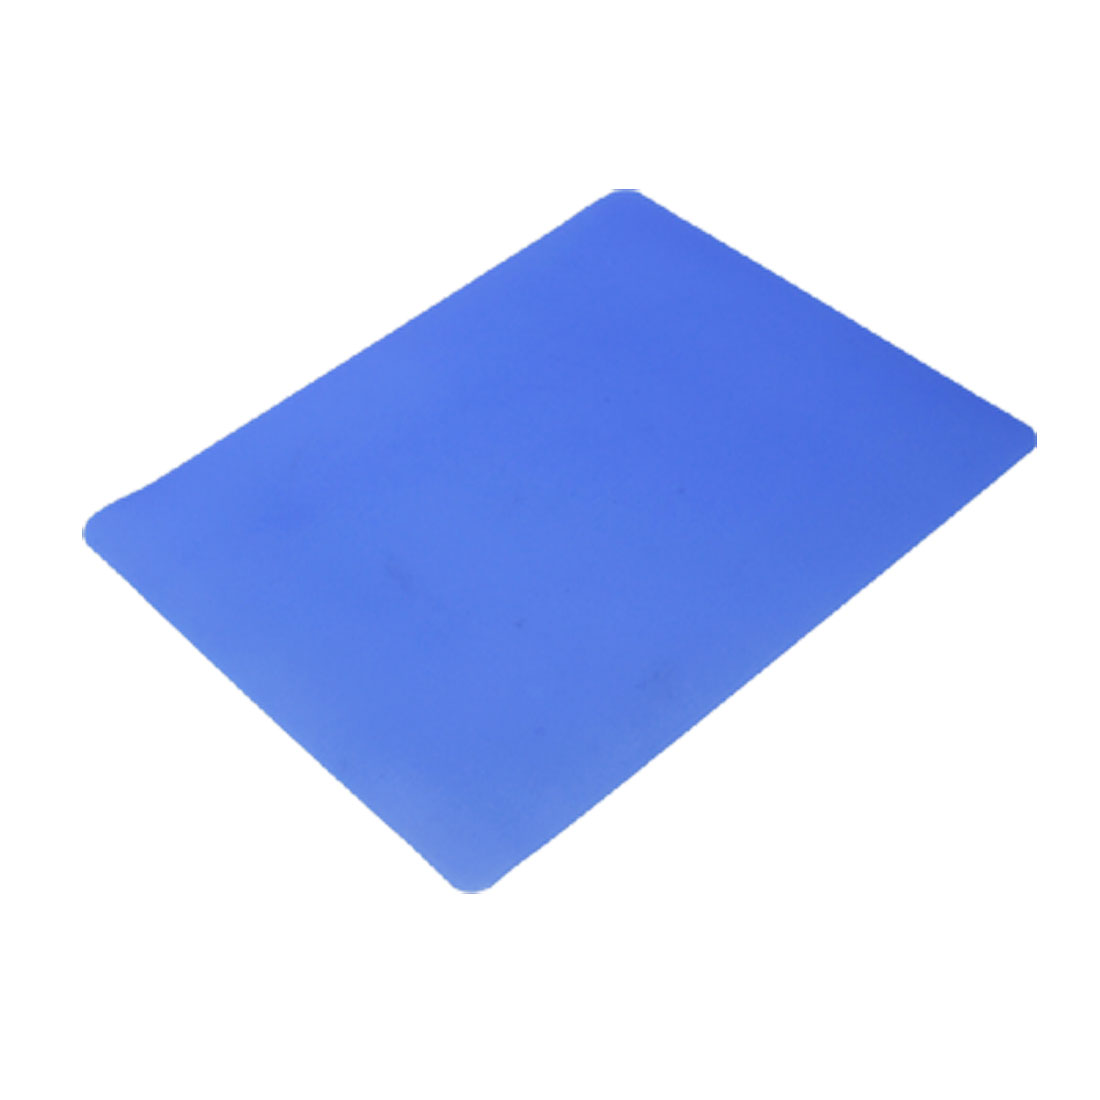 Blue Mousepad Mouse Pad for Computer Laptop PC